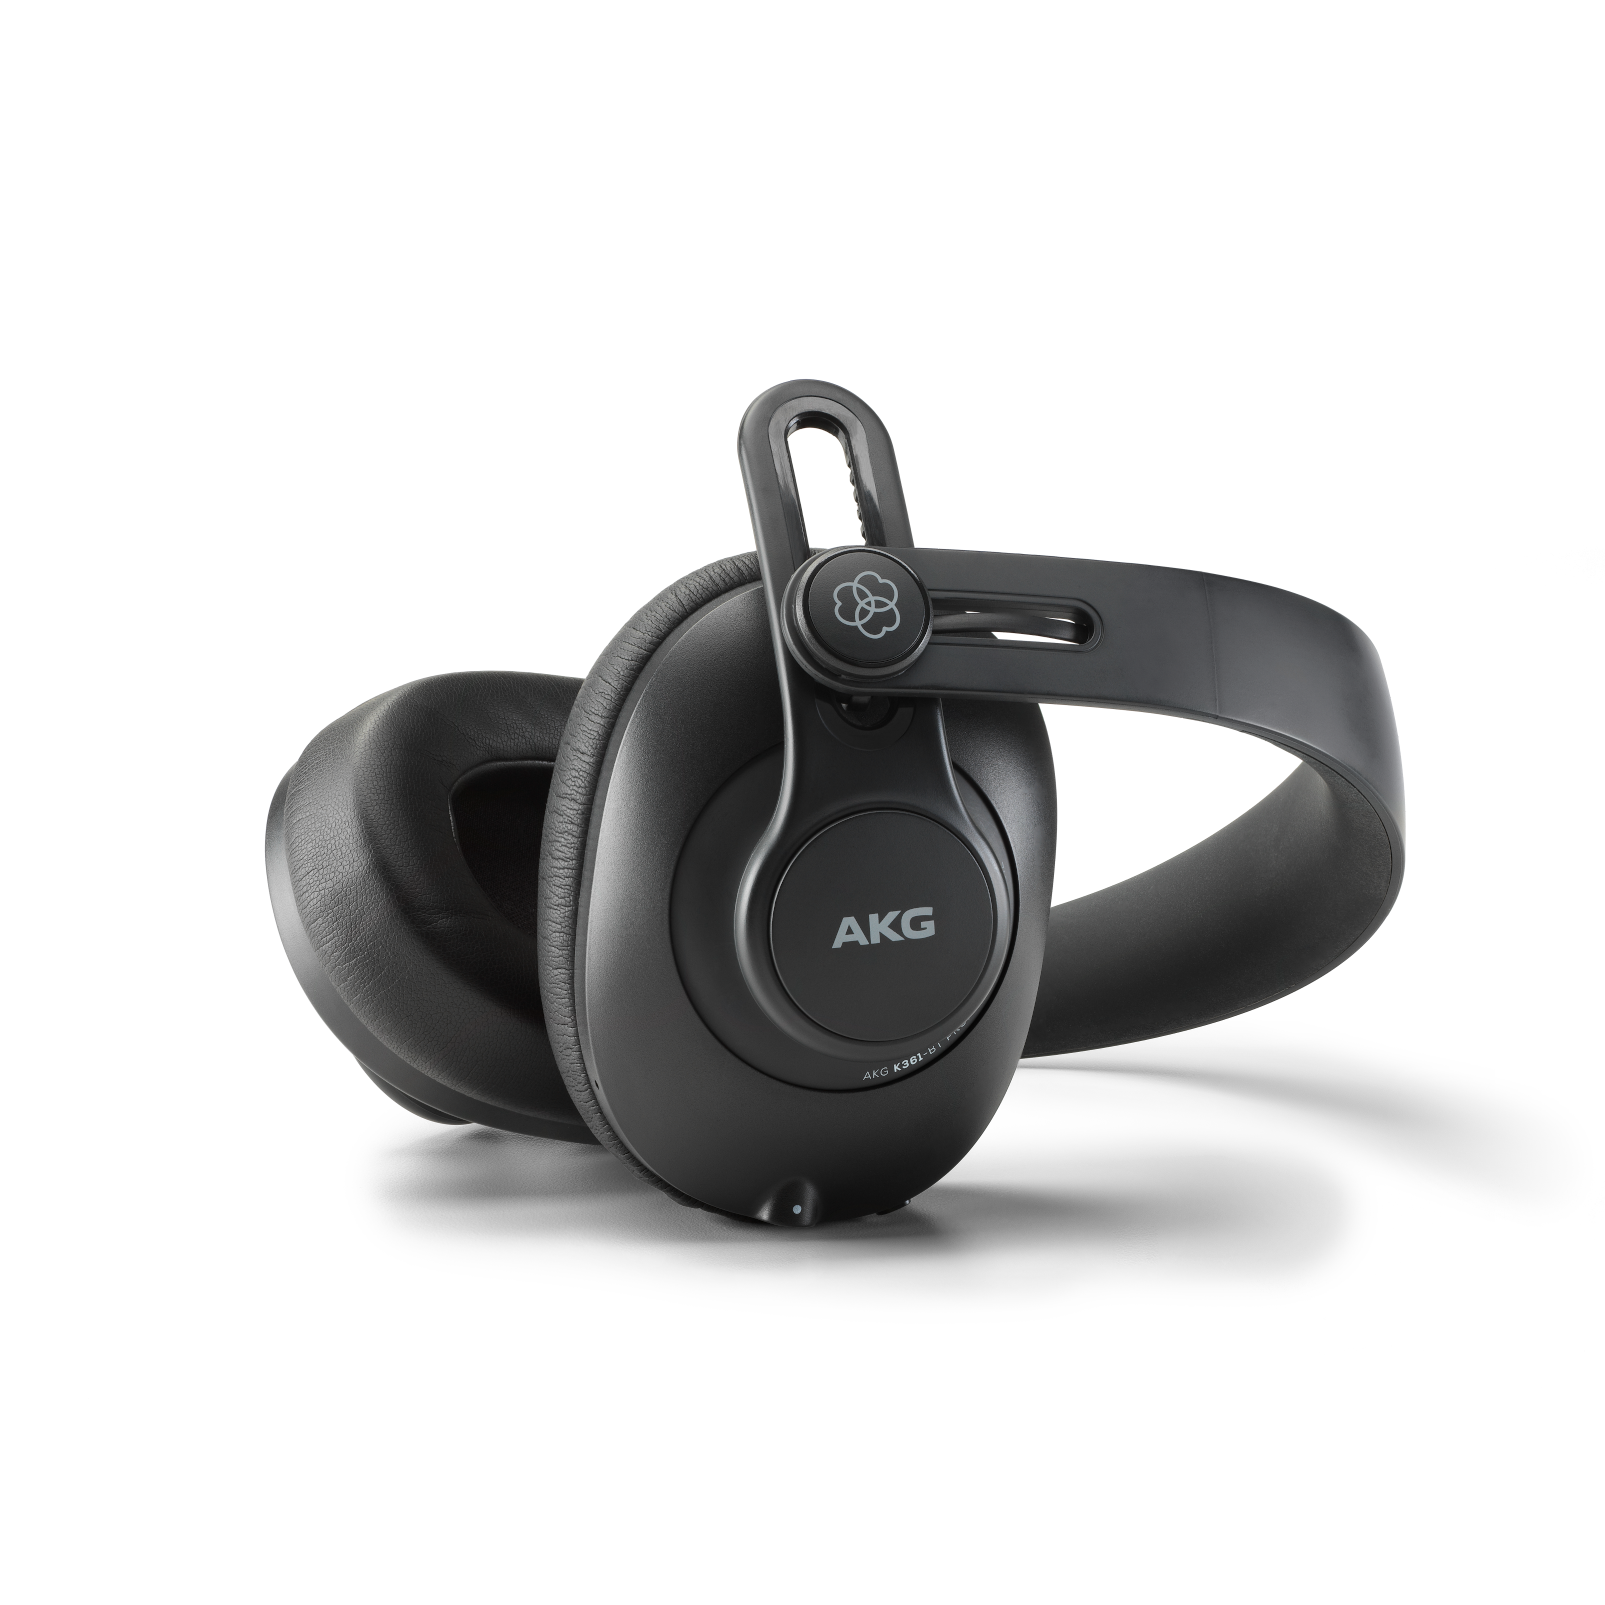 K361-BT - Black - Over-ear, closed-back, foldable studio headphones with Bluetooth - Detailshot 2